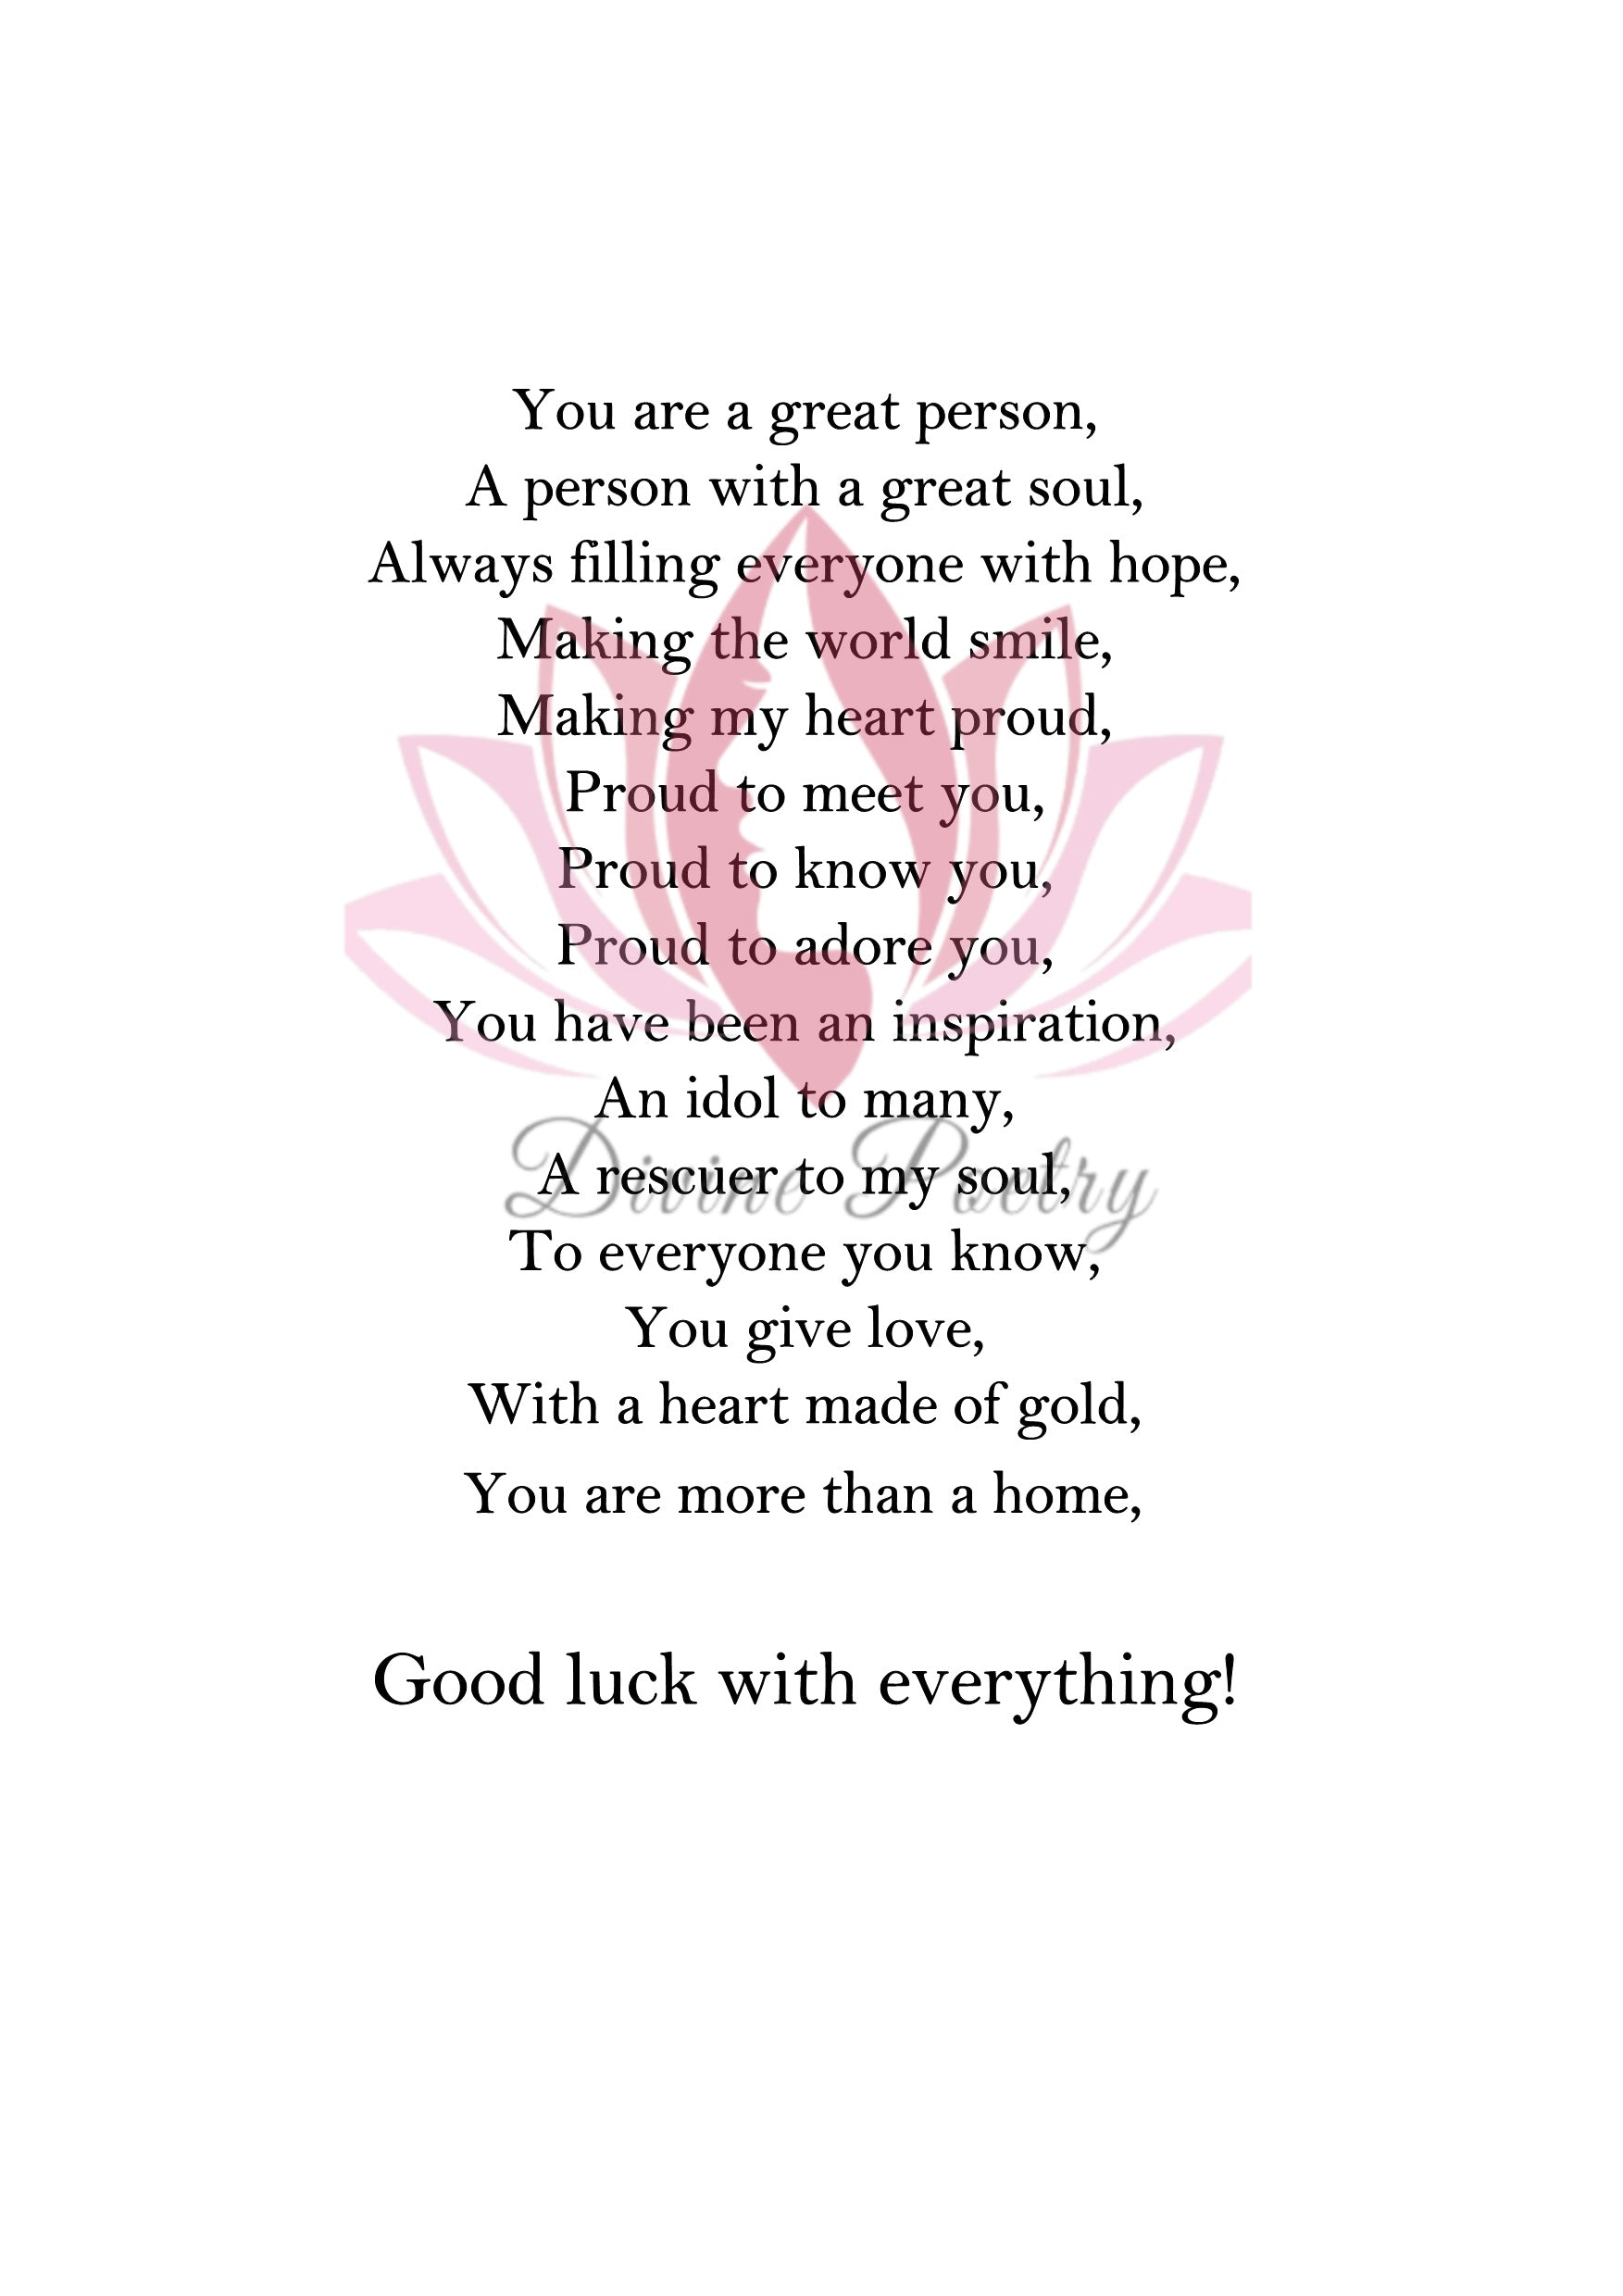 Good Luck - Divine Poetry